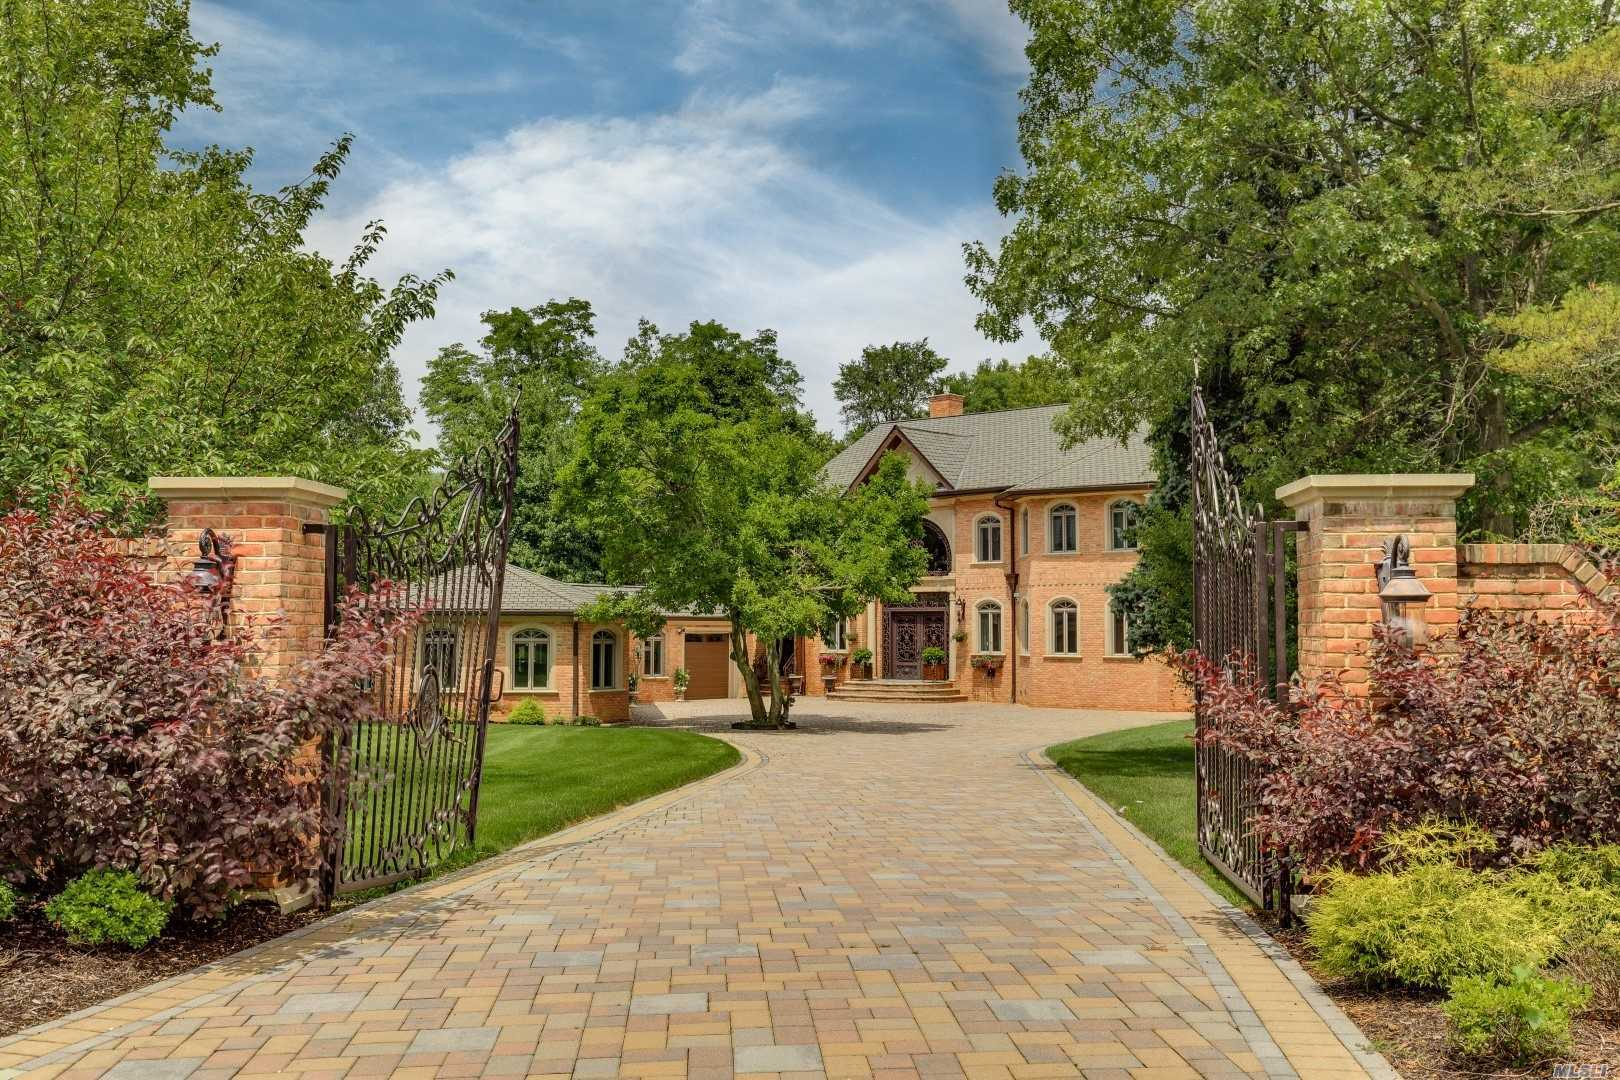 Built In 2006.Spec Cstm Brick 4 Bdrm, 4.5 Bth Col. Grand Ef And Grt Rm Comp W/20 Ft Ceilings, Intricately Milled Tray Ceiling, Mable Flrs W/ Rad Ht, Gas Fplce & Elegant Curved Staircase. Wall Of Glss Drs & Win Fill Space W/ Light.Spac Chef's Kit. Mstr Suite On 1st Flrw/Lux Bth, Possible 2nd Mstr Bdrm On 2nd Floor Ll W/10'Ceilings & Sep Ent. Wonderful Patio Area. Beautiful Flat, Very Prvte Lndscped Acre